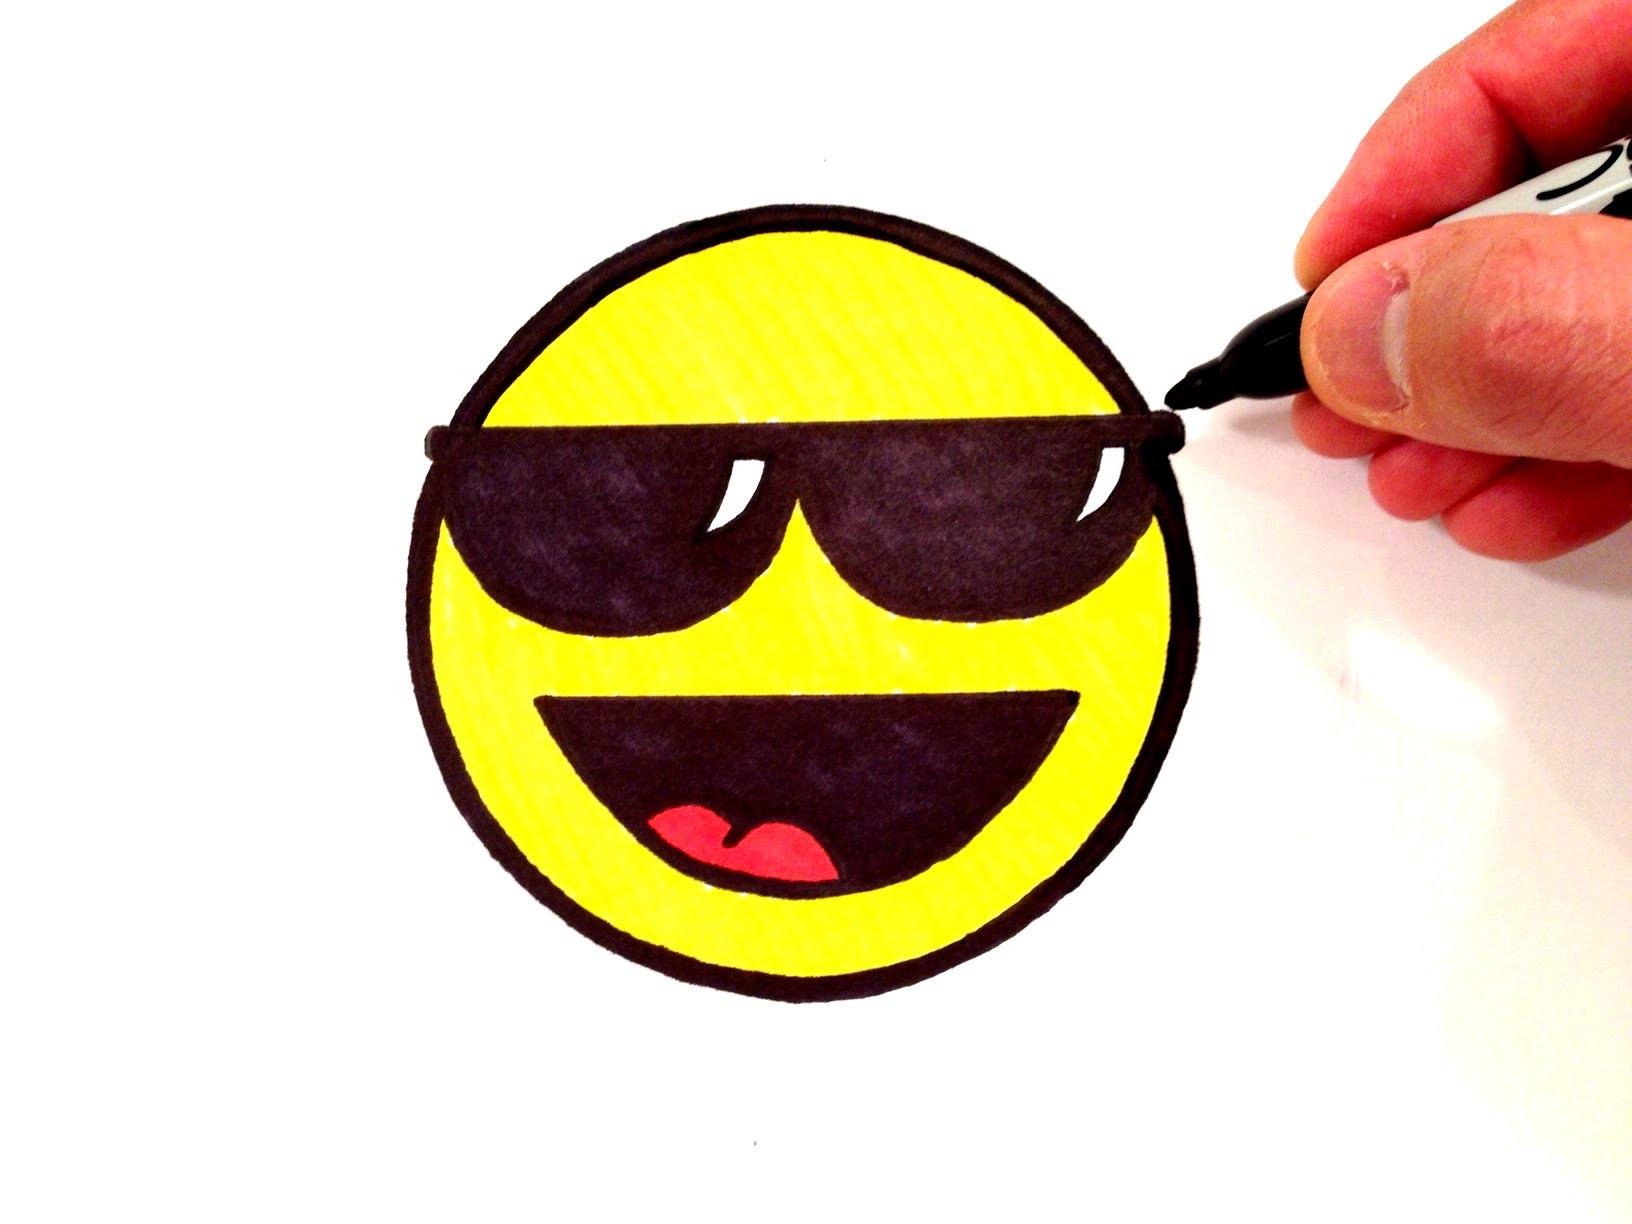 1632x1224 How To Draw A Cool Smiley Face With Sunglasses